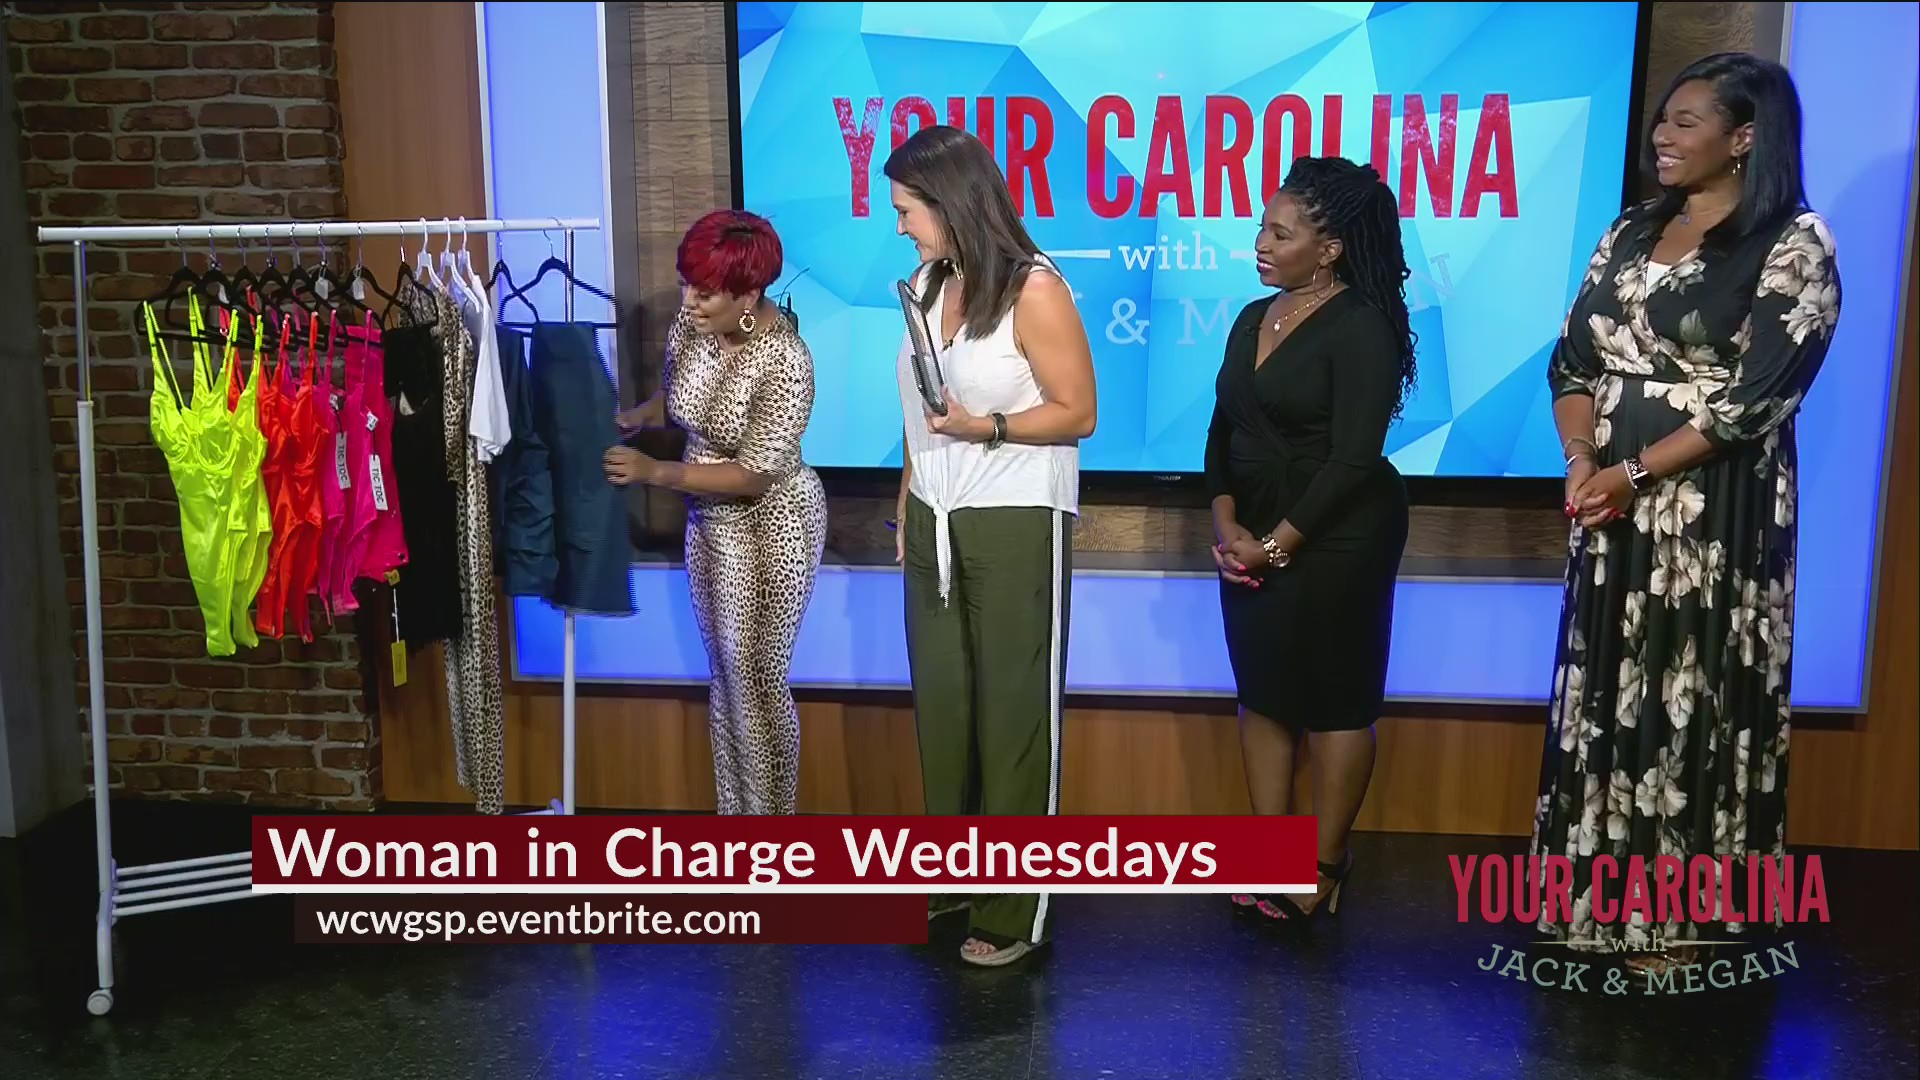 Woman in Charge Wednesday - Women in Business Empowerment